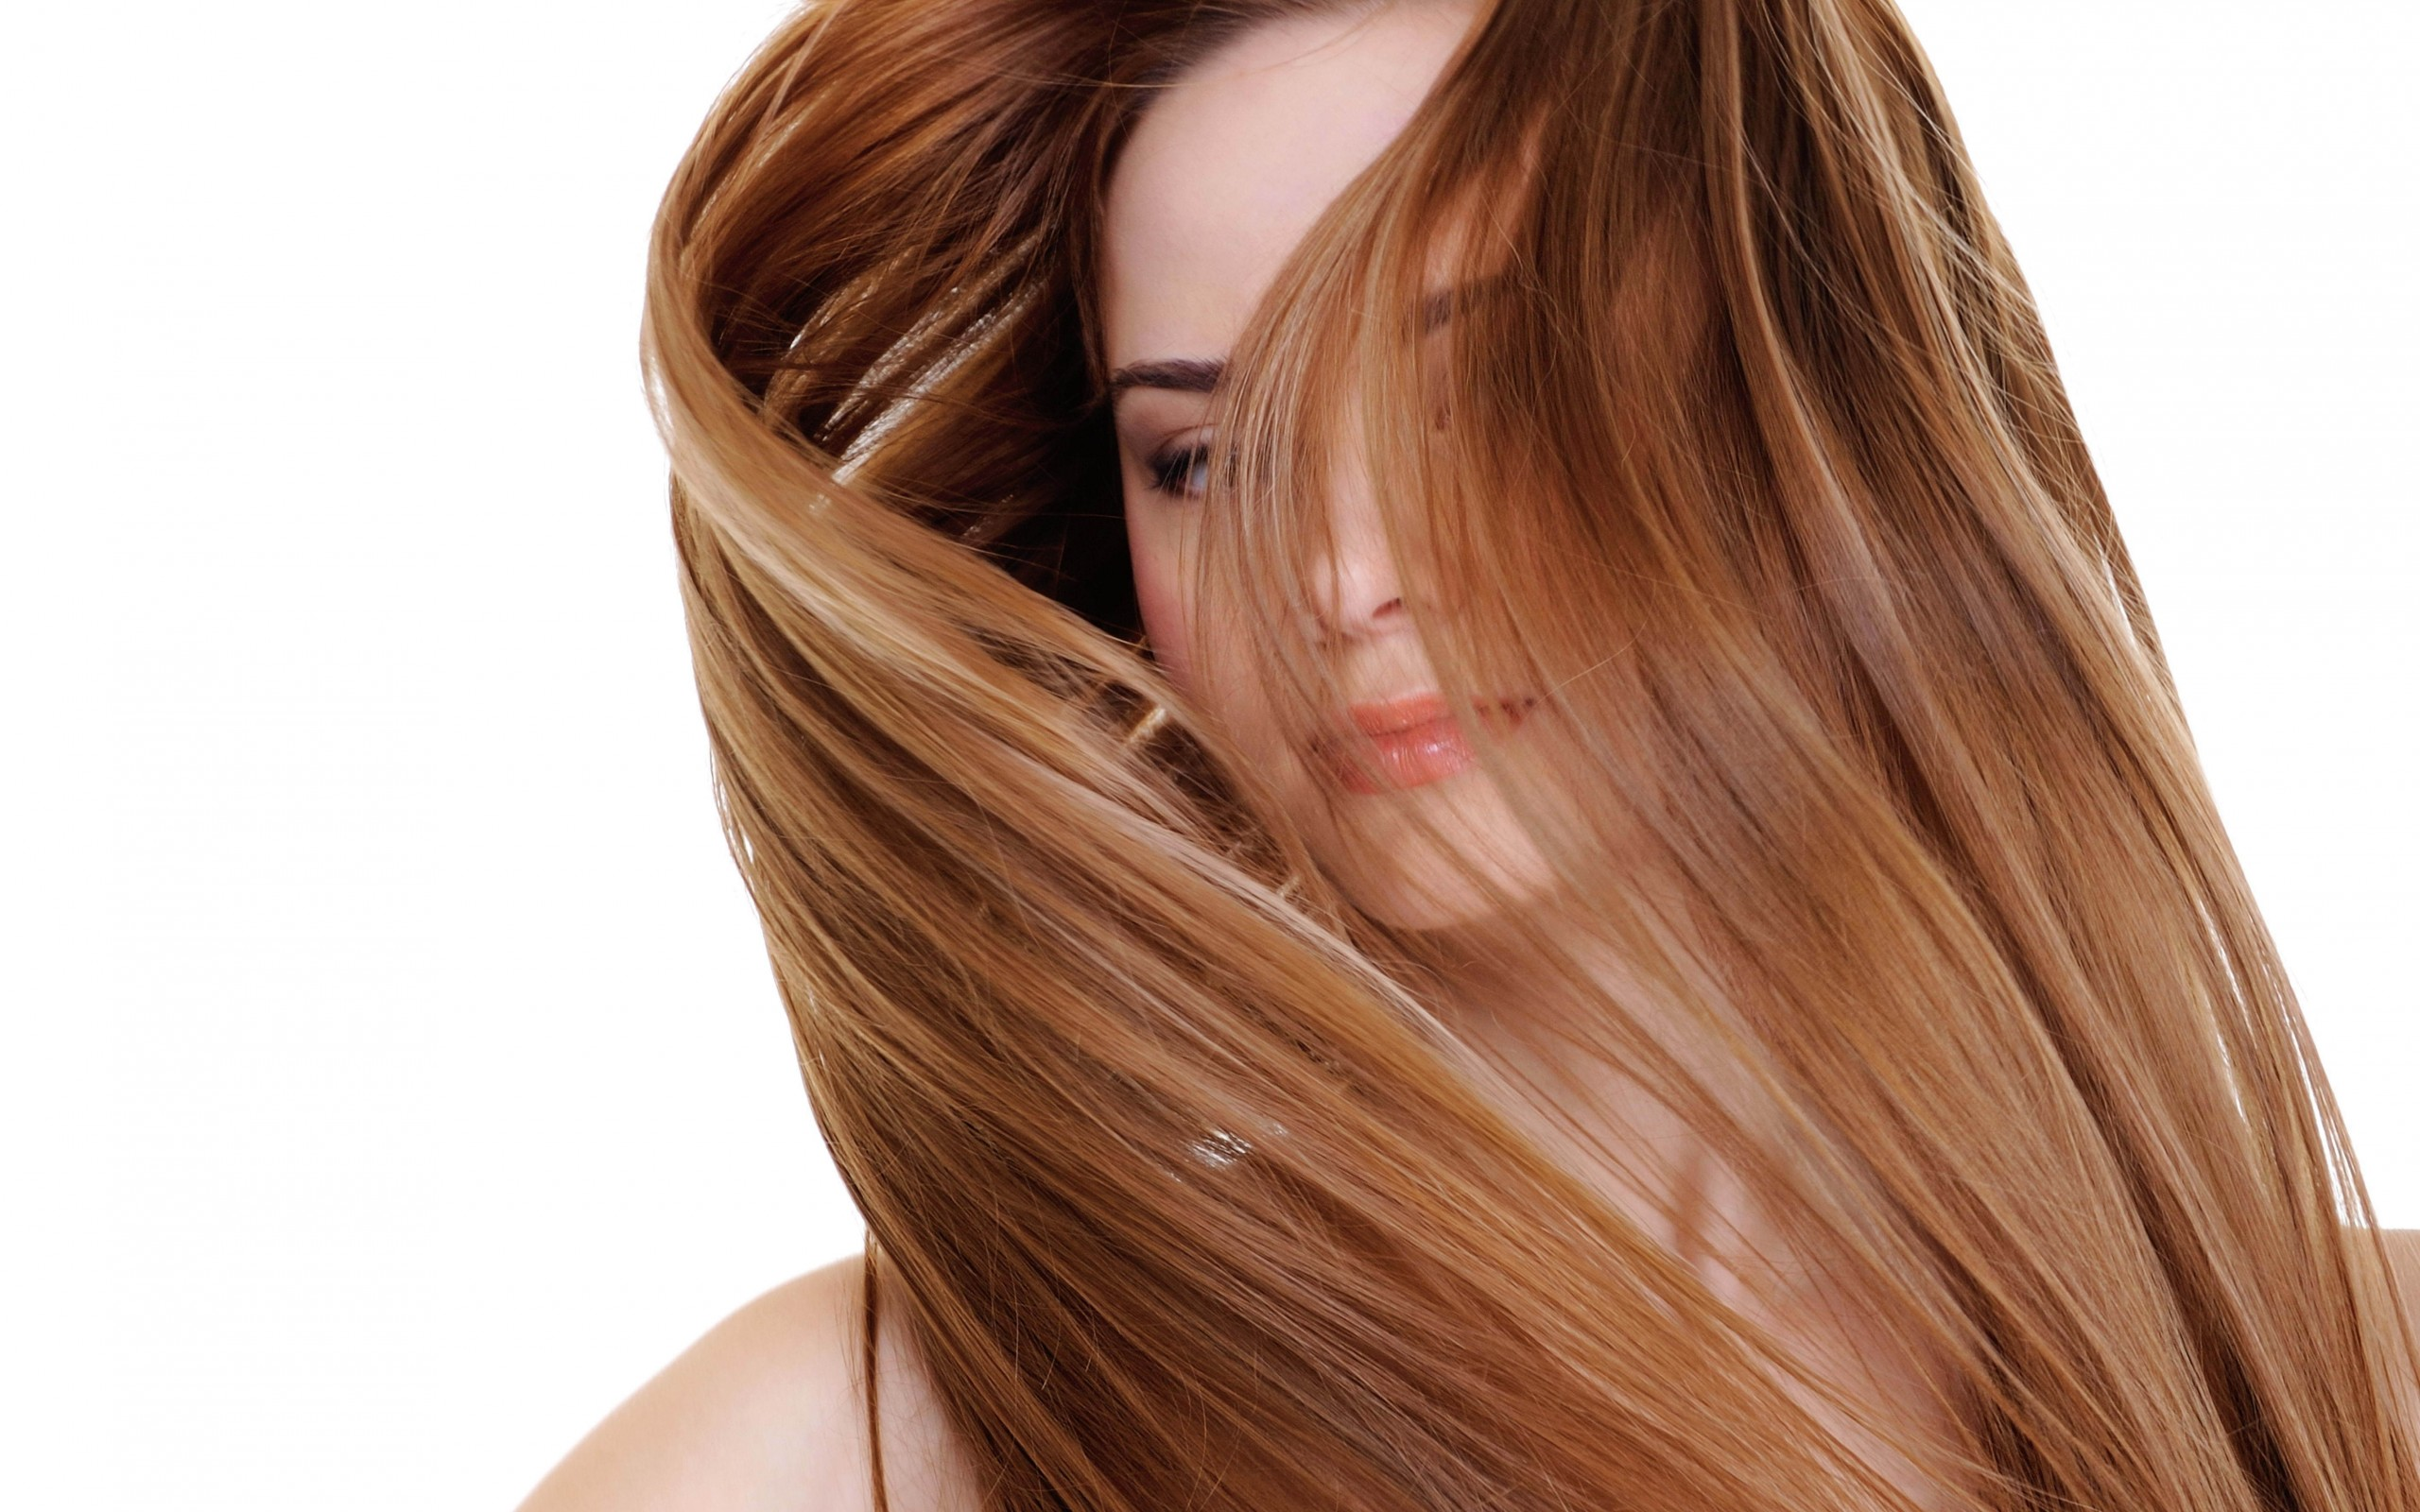 hair design backgrounds - photo #3